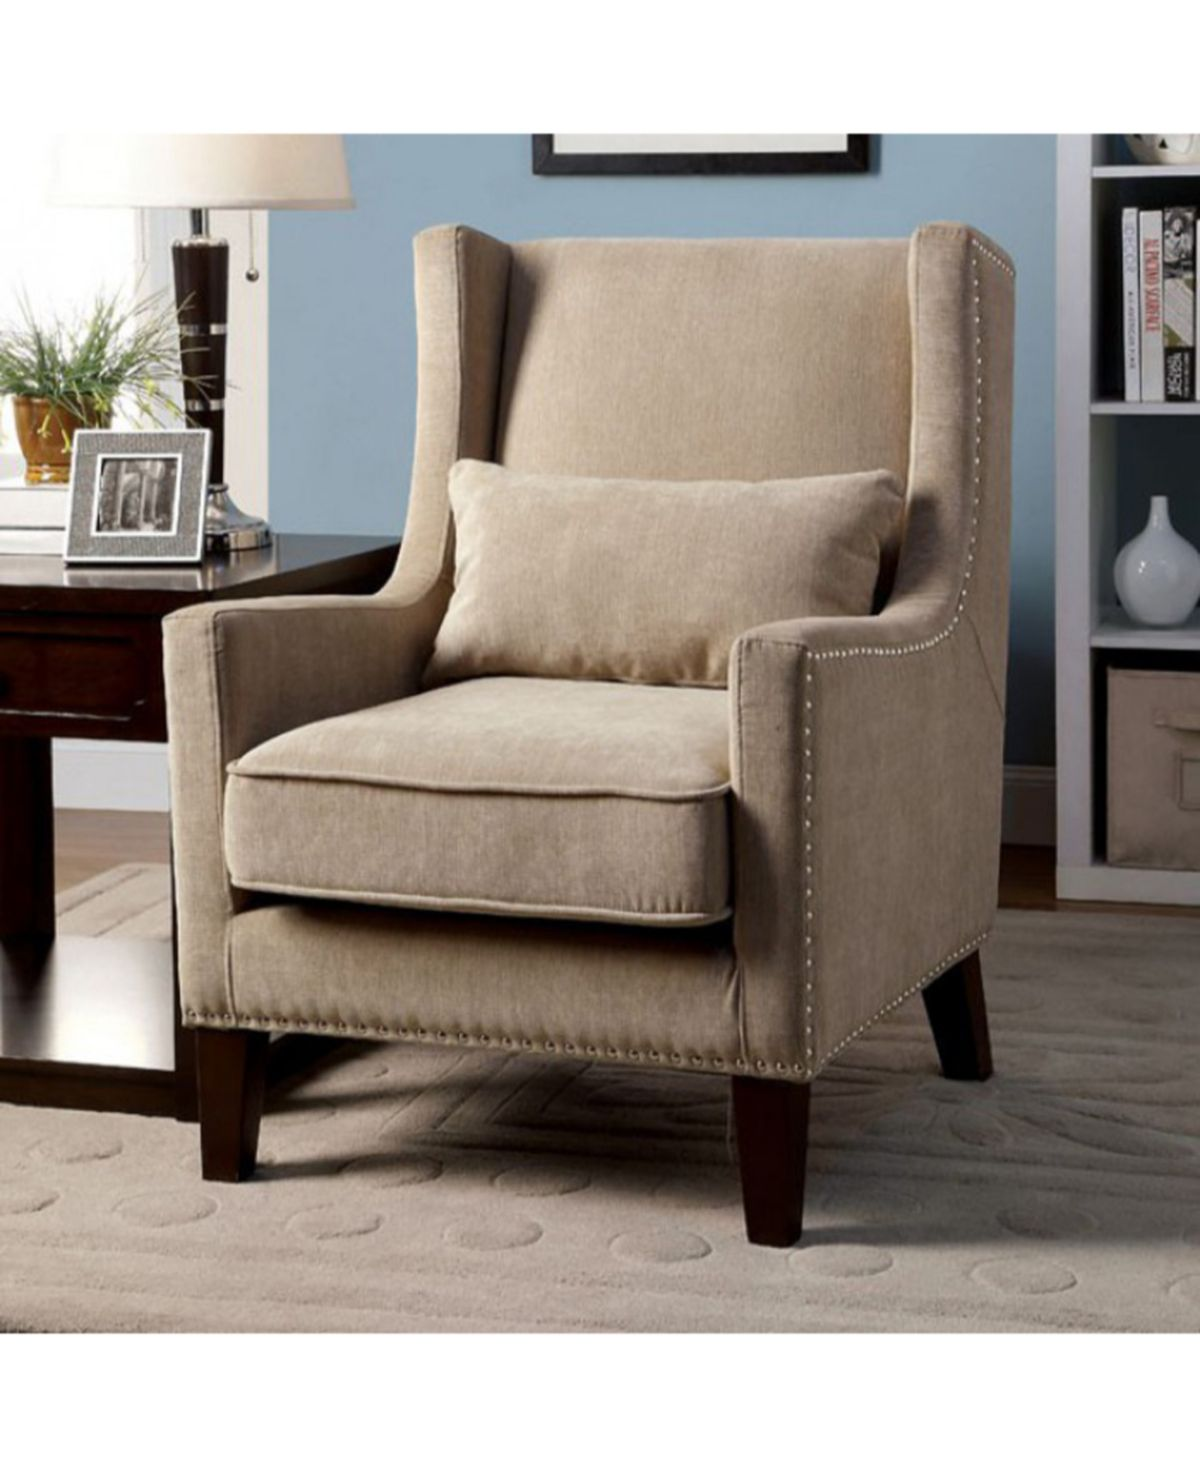 Benzara Transitional Accent Chair Reviews Chairs Furniture